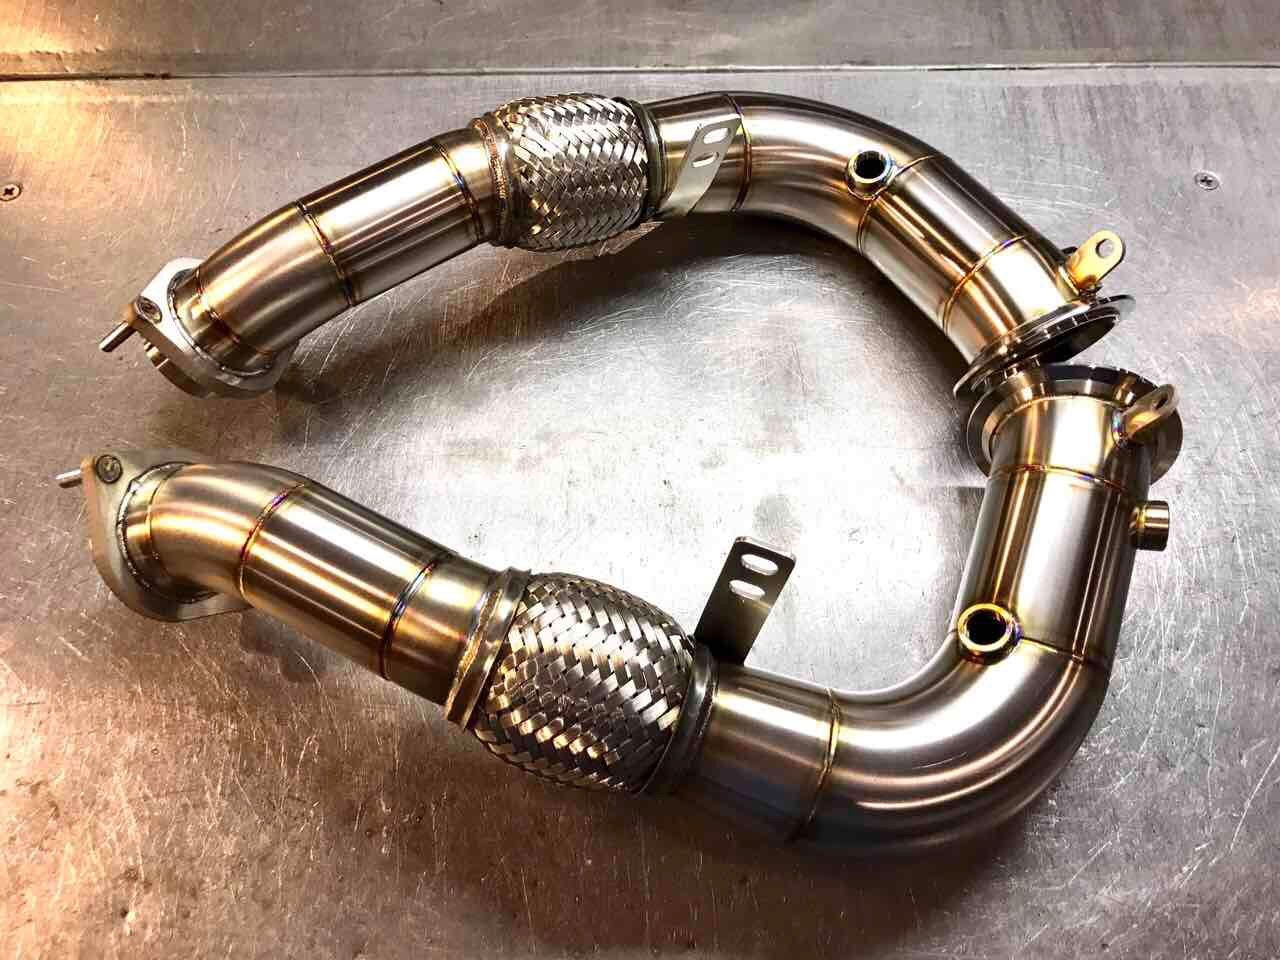 BMW 550i decat downpipe 20102012 (Ready For Installation